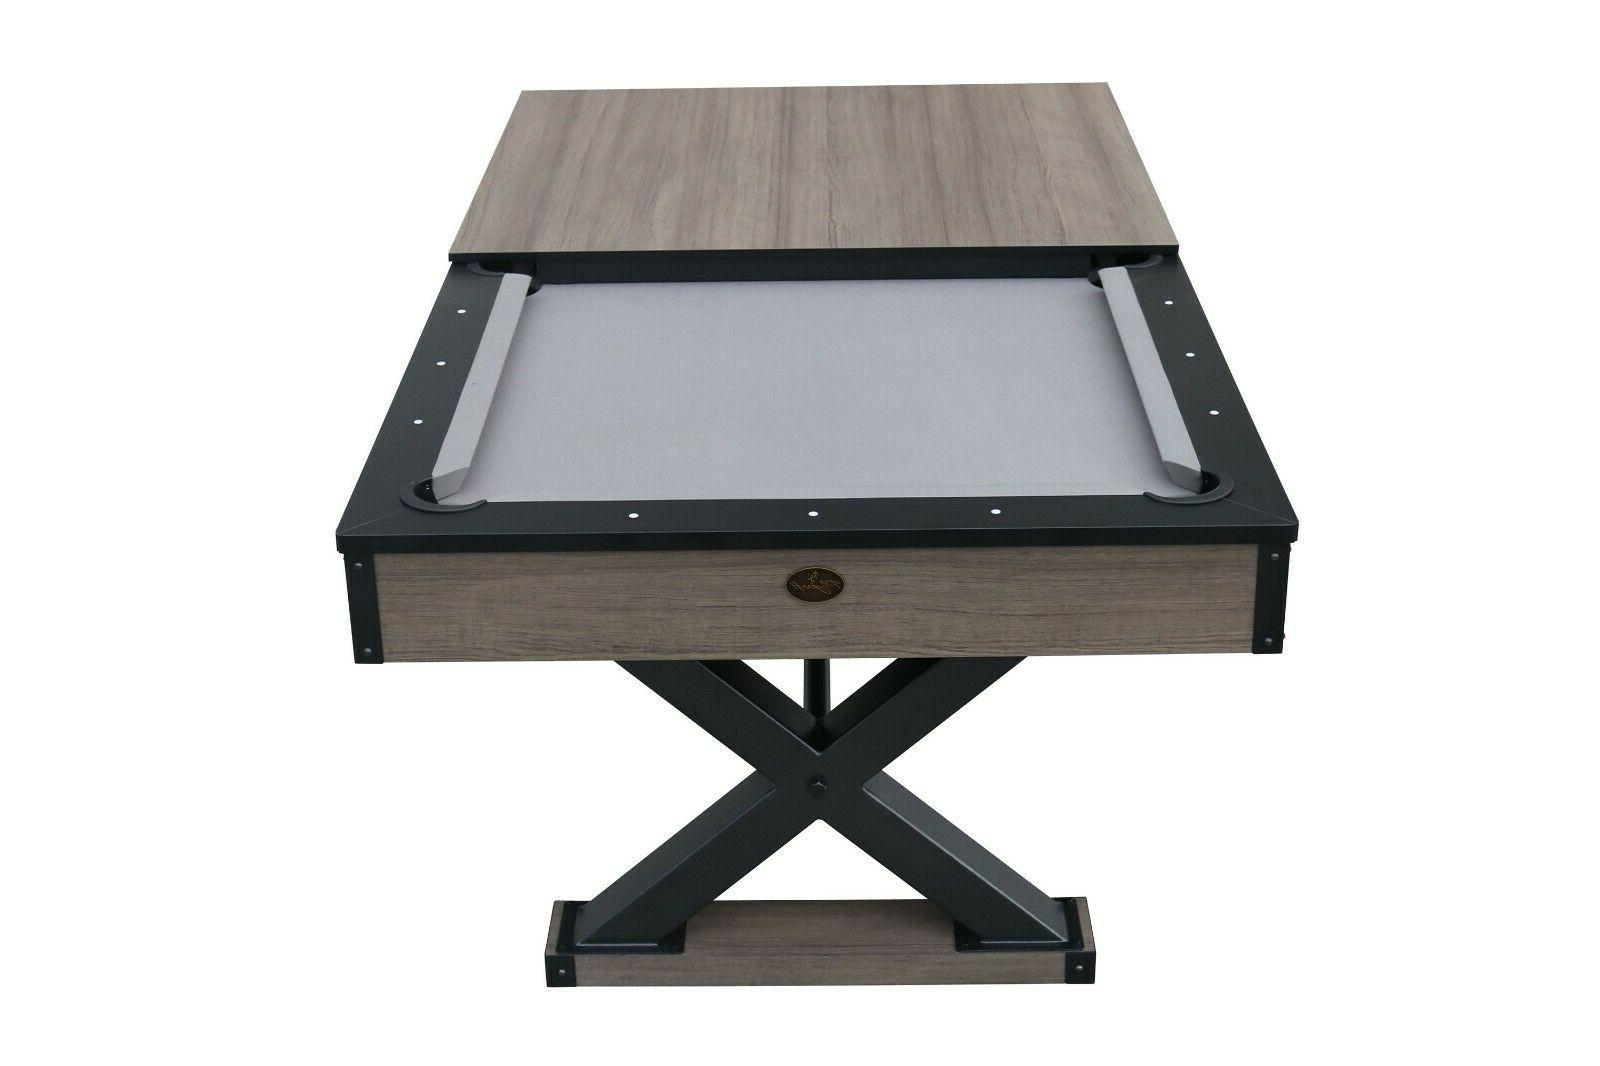 Playcraft 7' Pool Table Dining Top